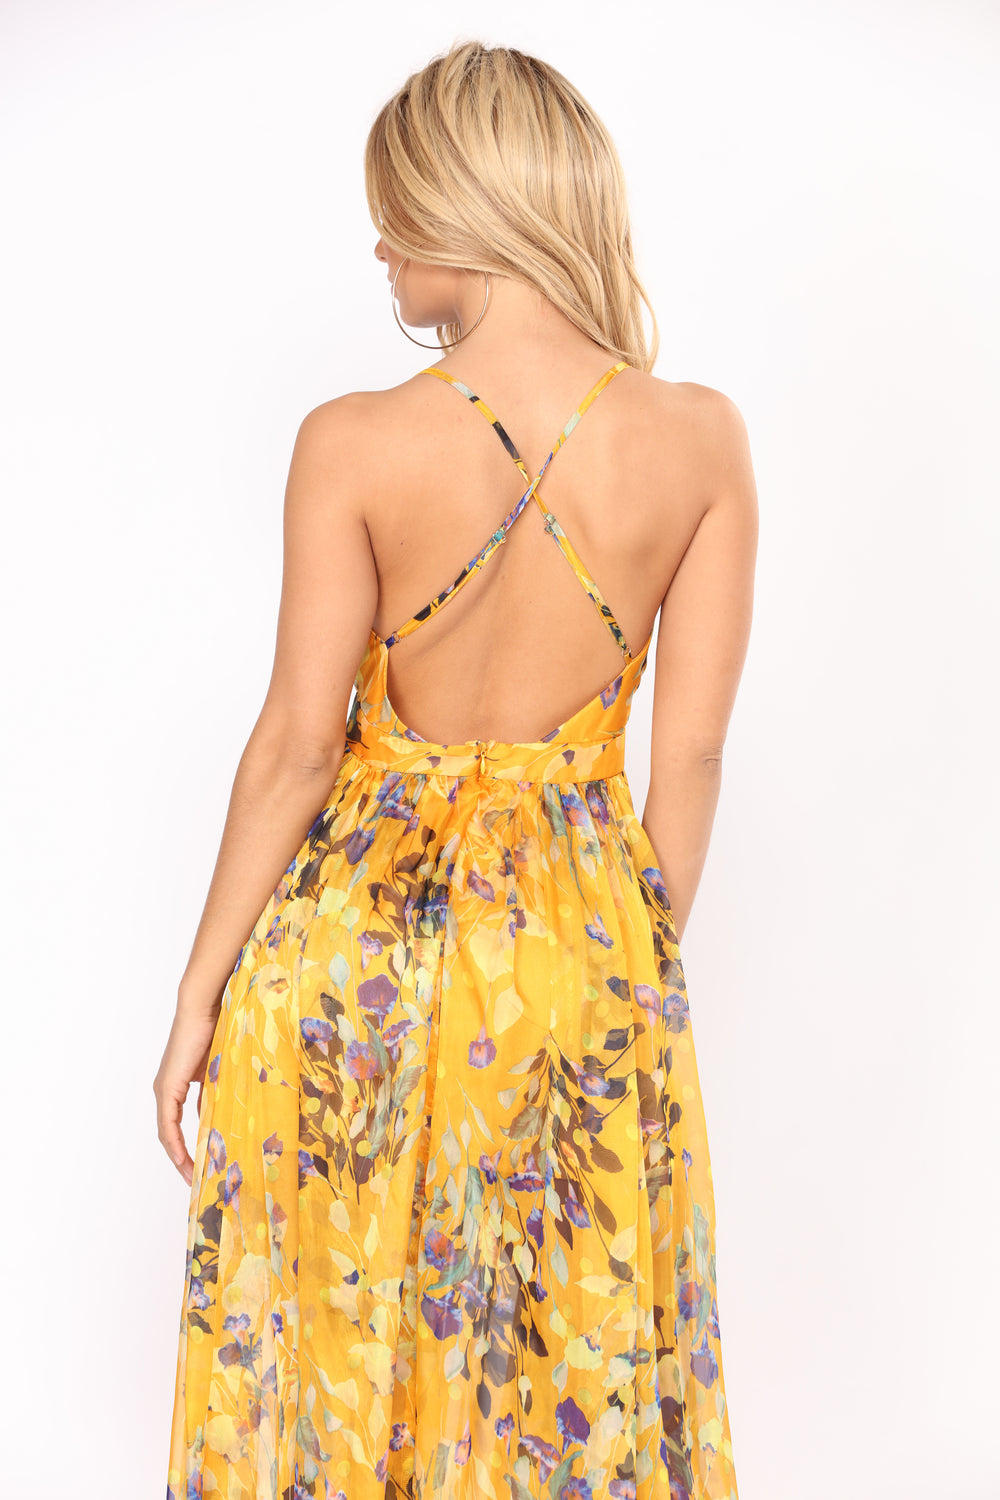 Sunshine State Floral Dress - Yellow